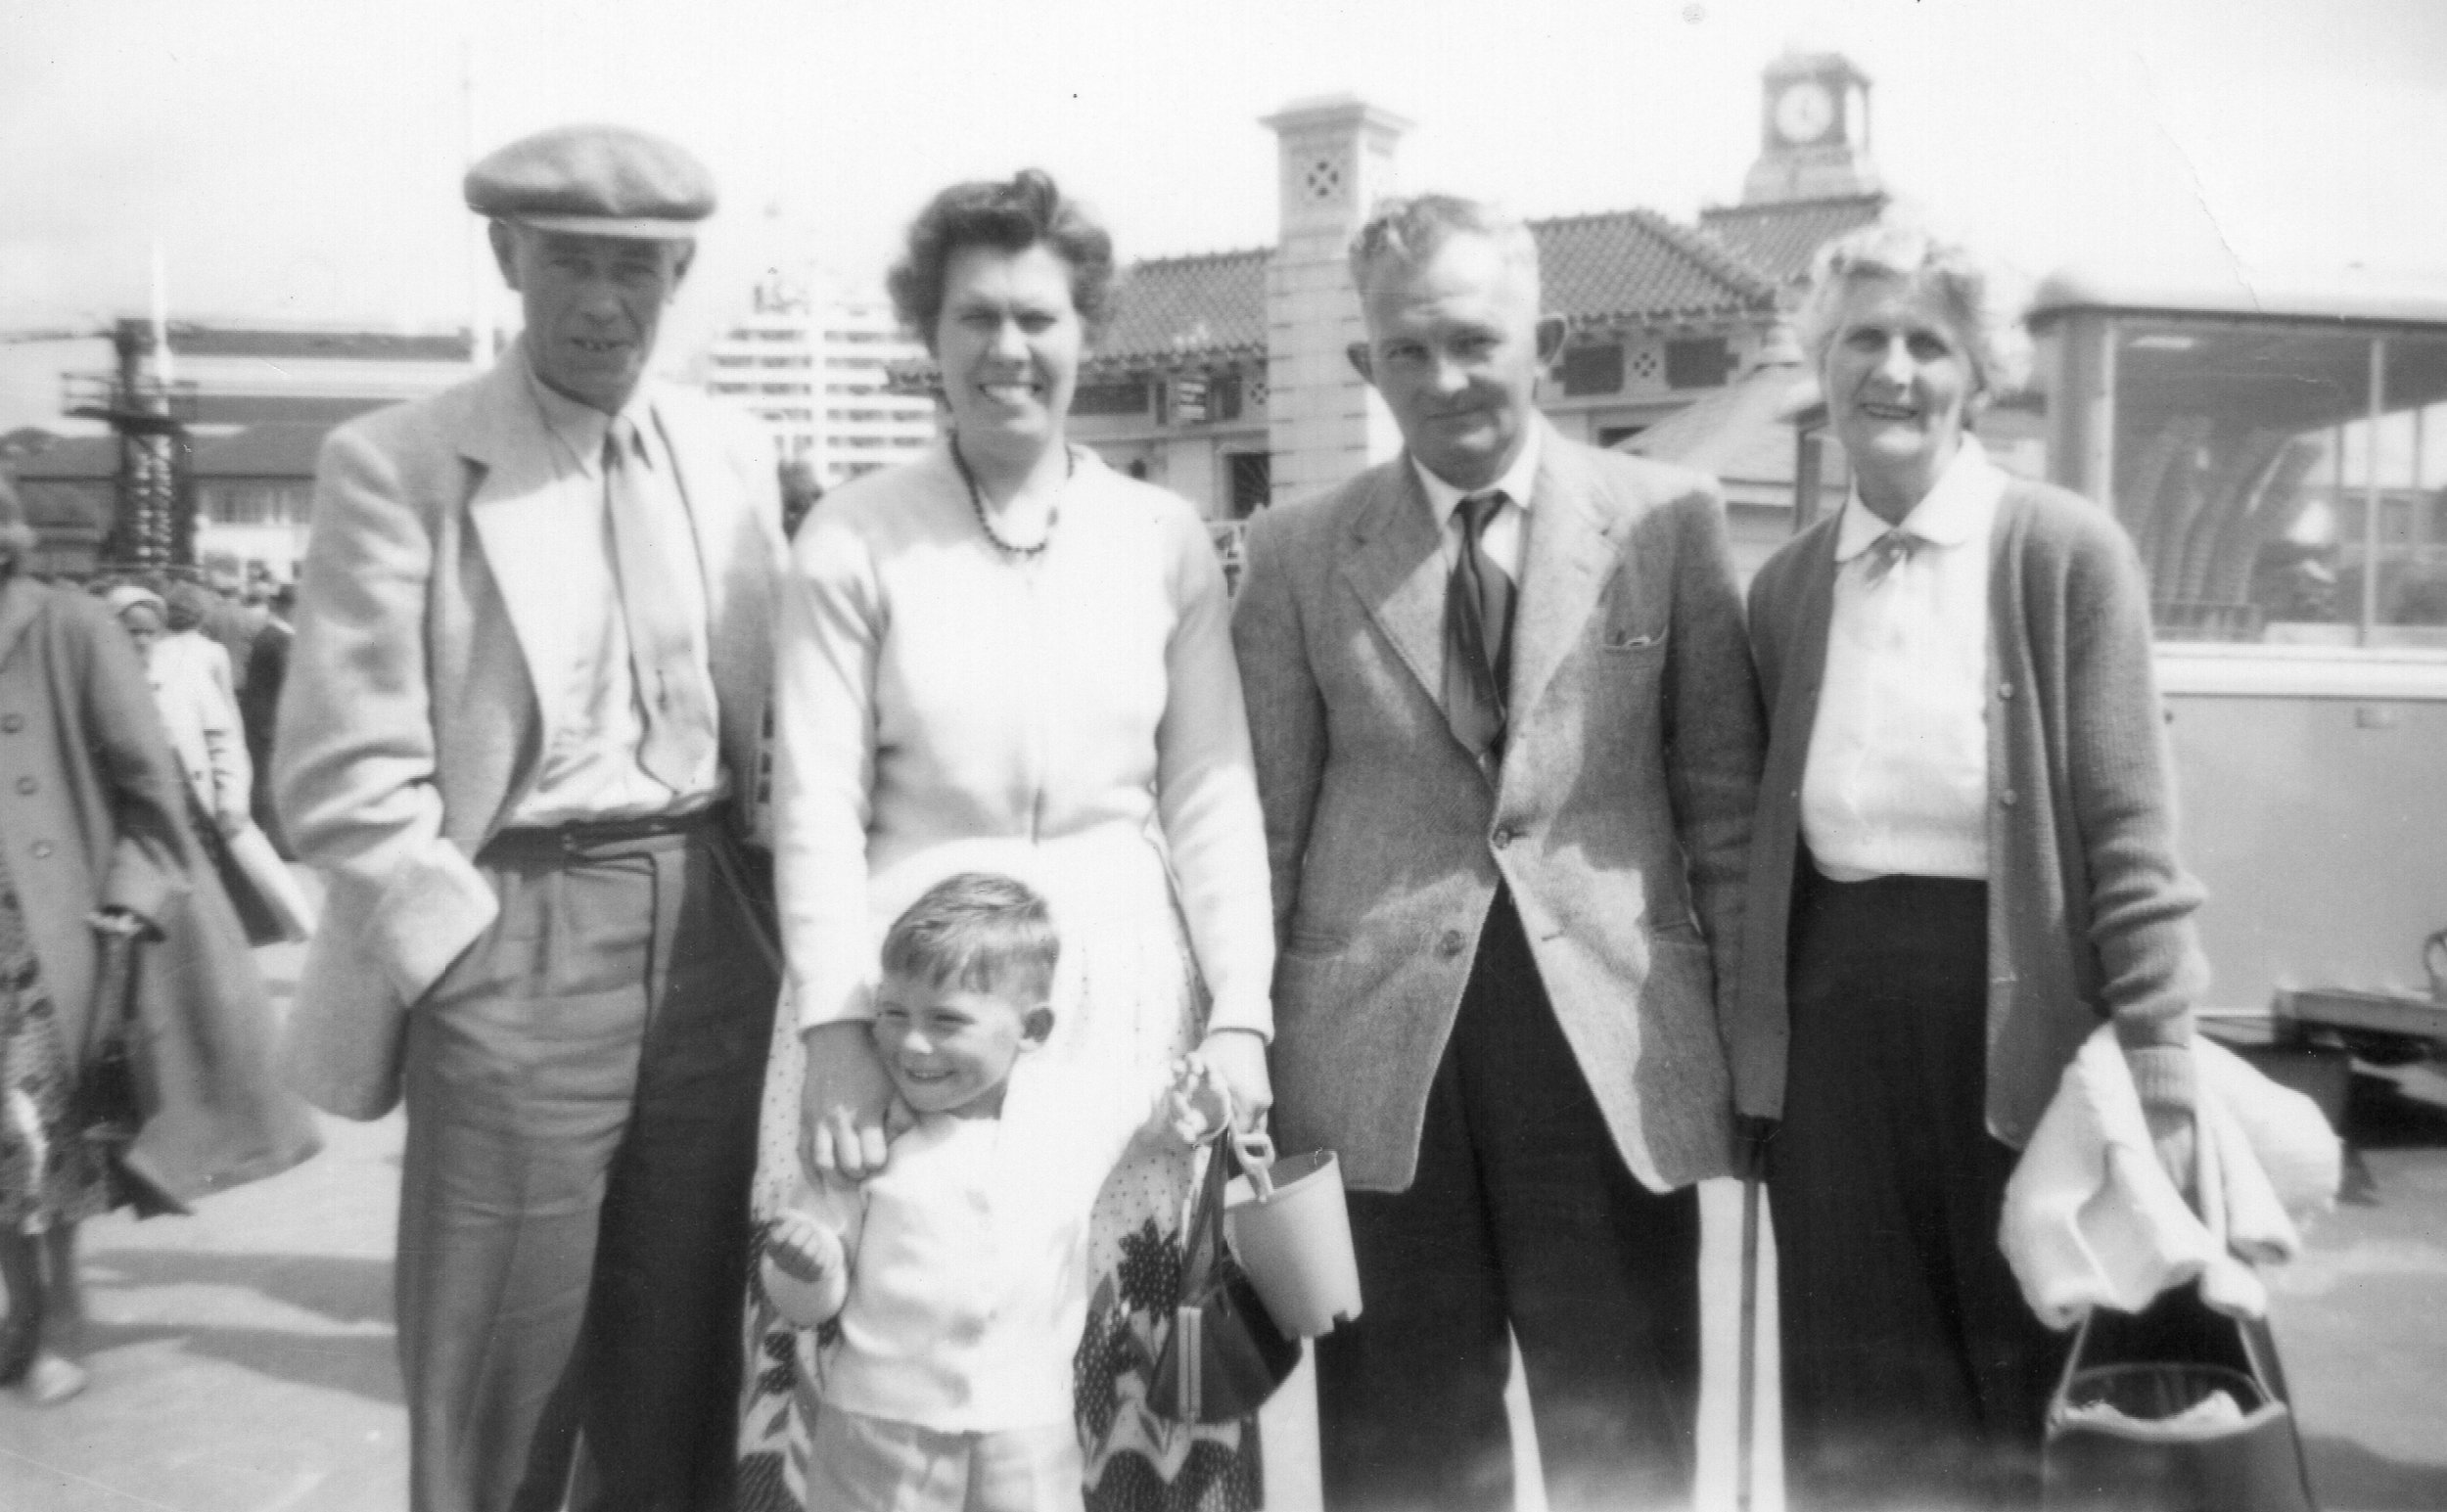 My dad with his parents and grandparents.